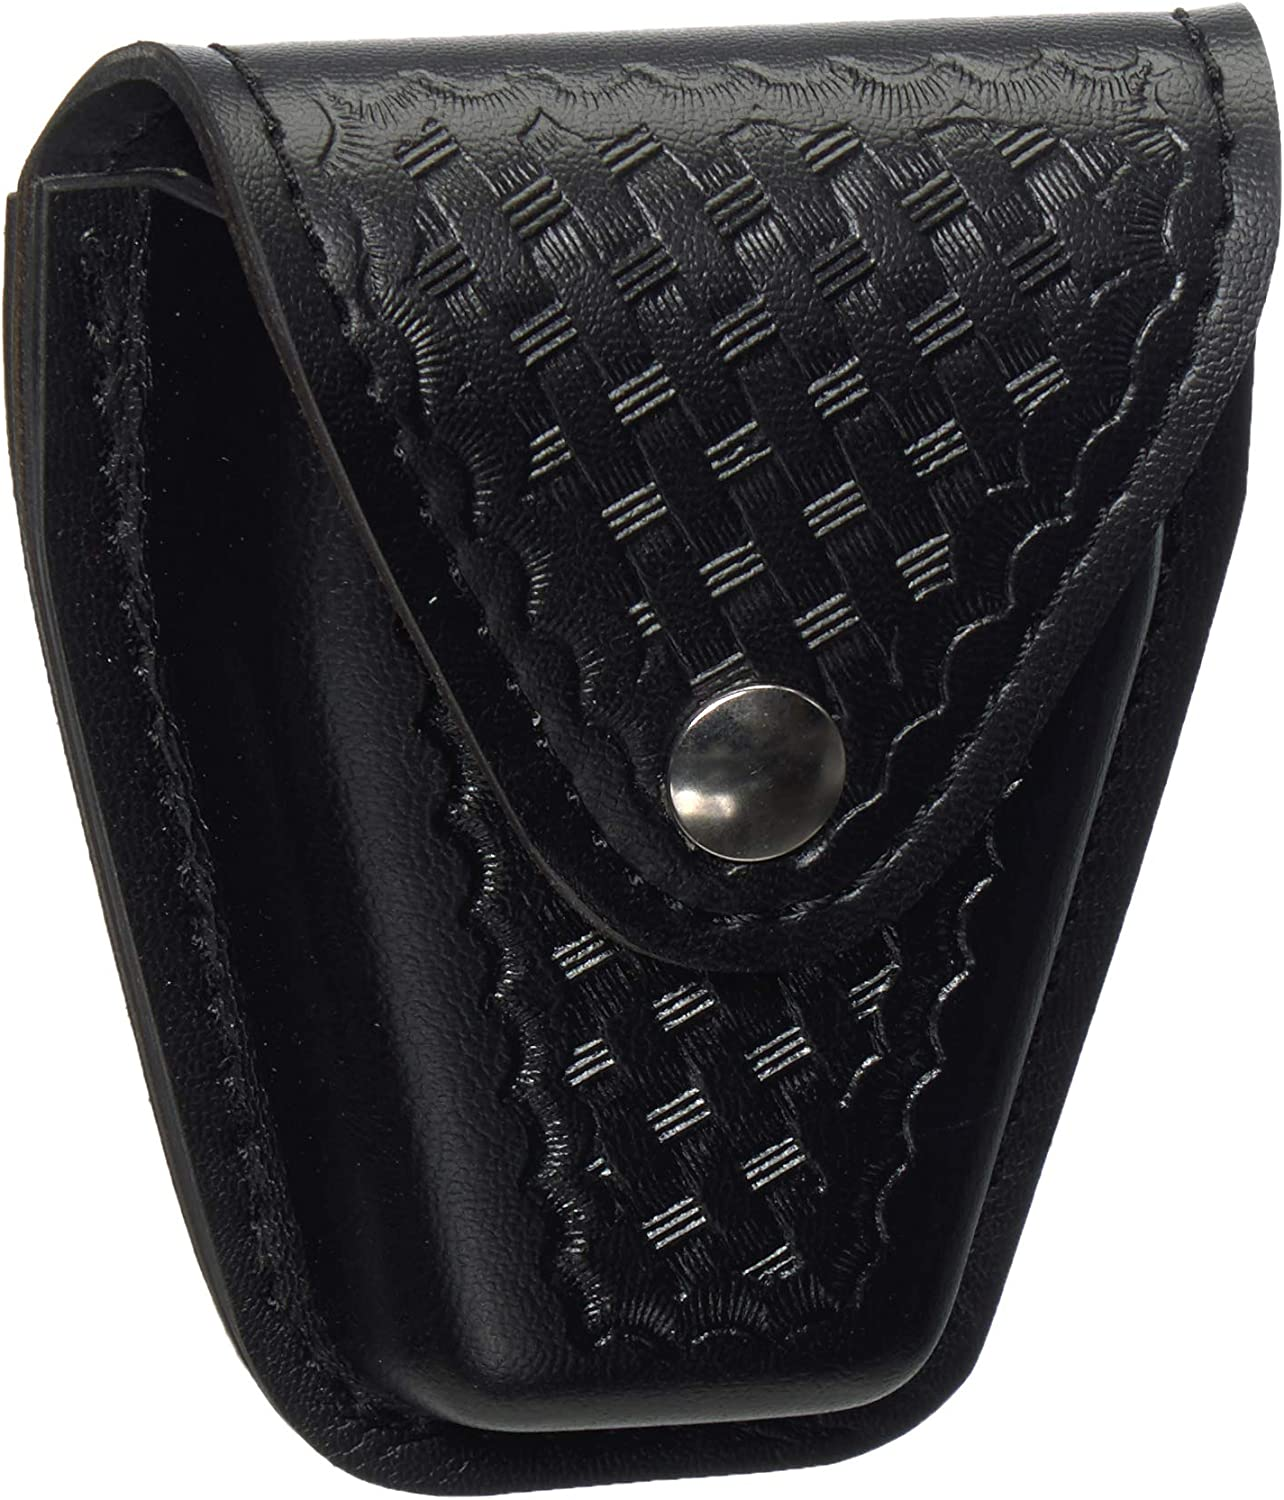 Safariland Duty Gear Flap Top Chrome Snap Basketweave Handcuff Case (Black)